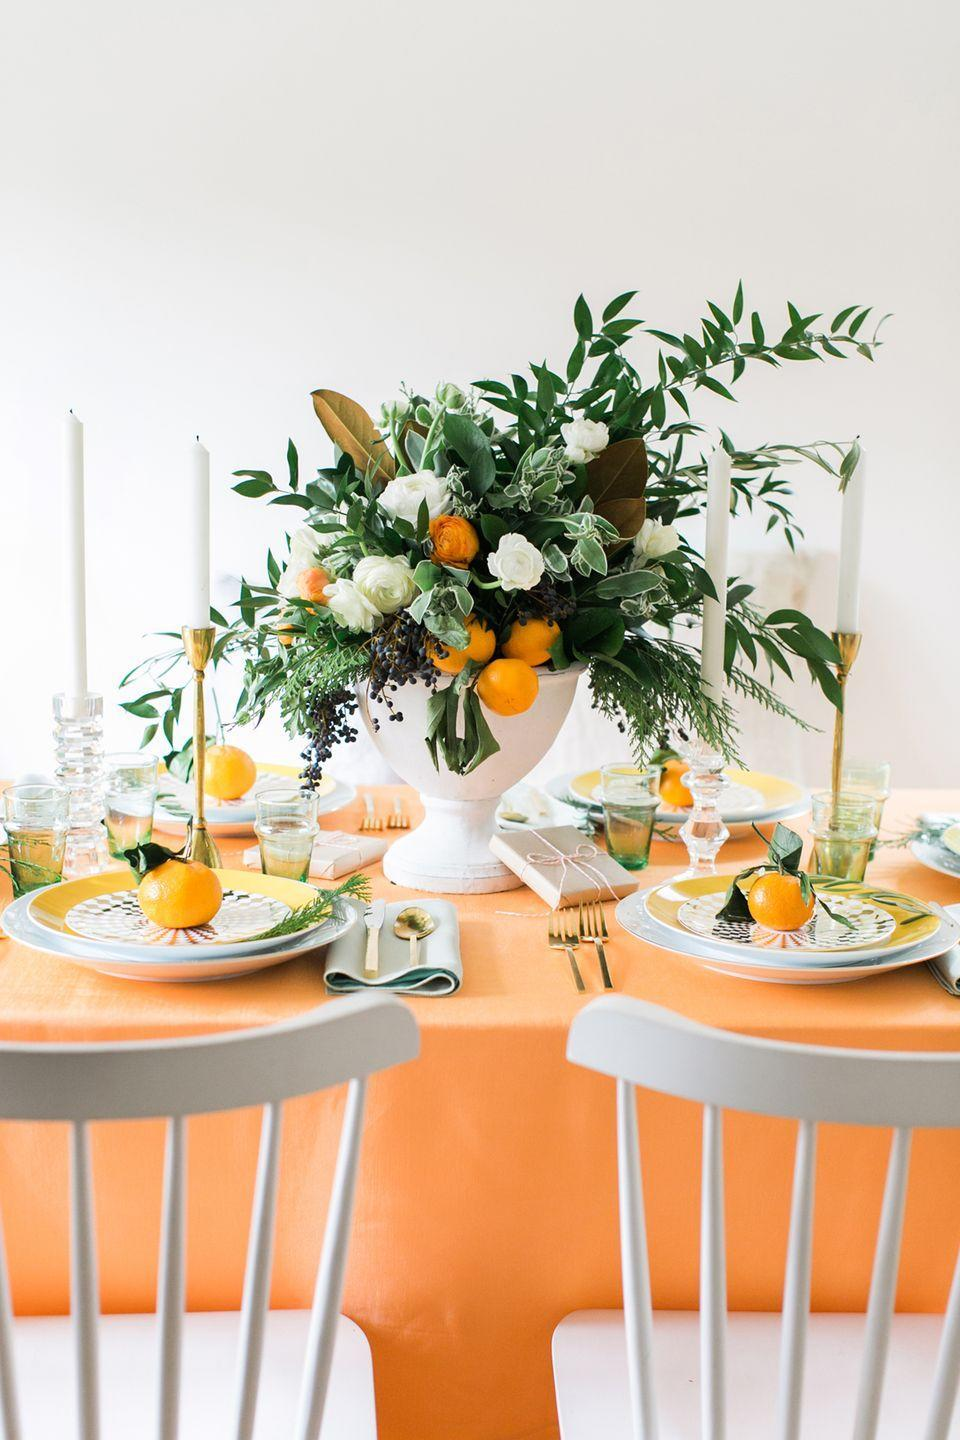 "<p>Pair the typical Thanksgiving color (in a more vibrant shade) with white for a clean and colorful table. Then, accent with fresh greens. They'll pop even more against the bright palette. </p><p>See more at <a href=""http://www.cocokelley.com/2016/12/holiday-tabletop-citrus-christmas/"" rel=""nofollow noopener"" target=""_blank"" data-ylk=""slk:Coco Kelley"" class=""link rapid-noclick-resp"">Coco Kelley</a>.<br></p>"